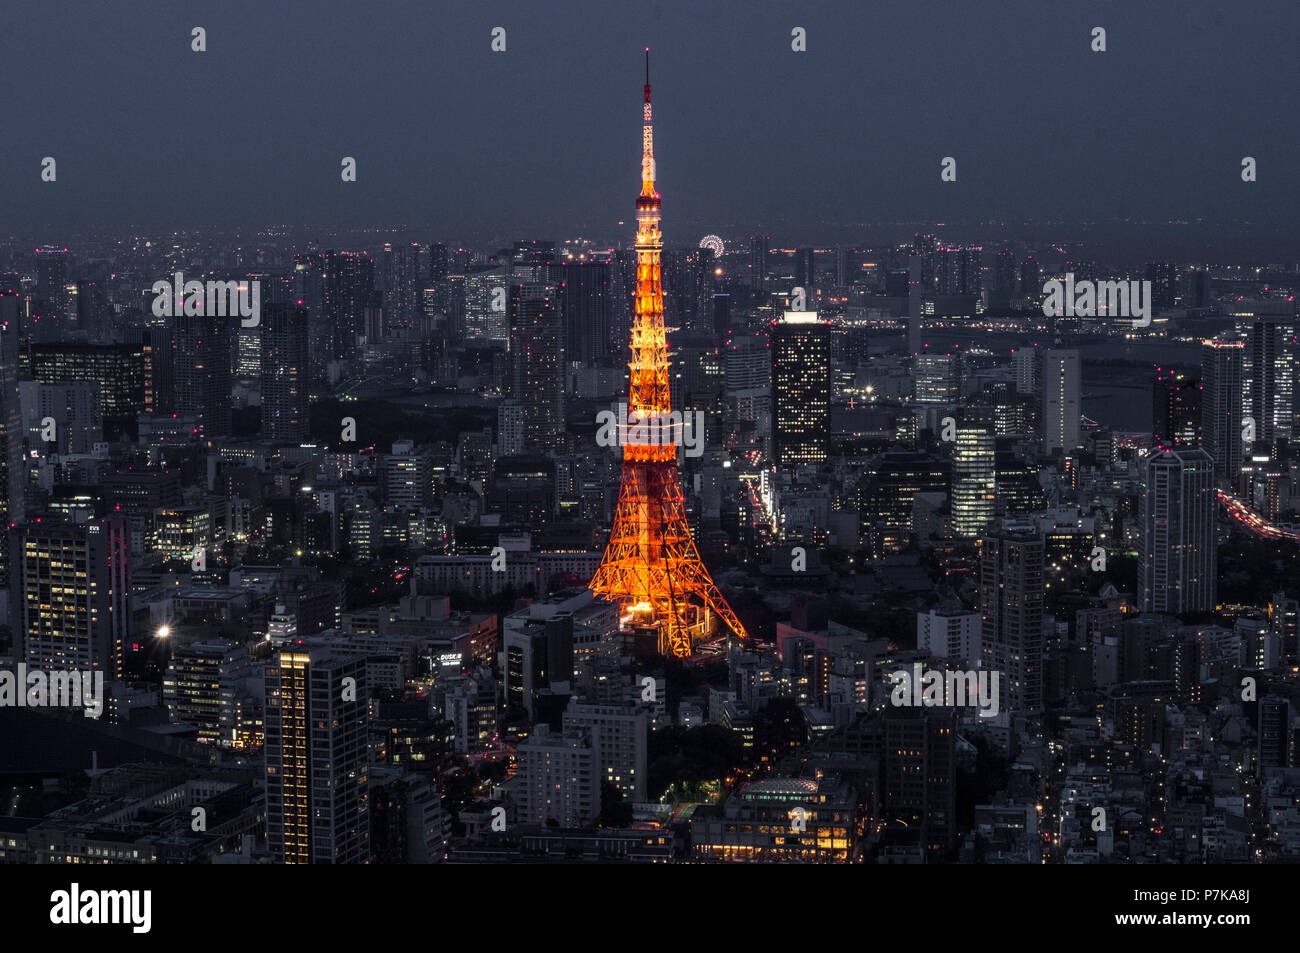 The Tokyo Tower at night - Stock Image